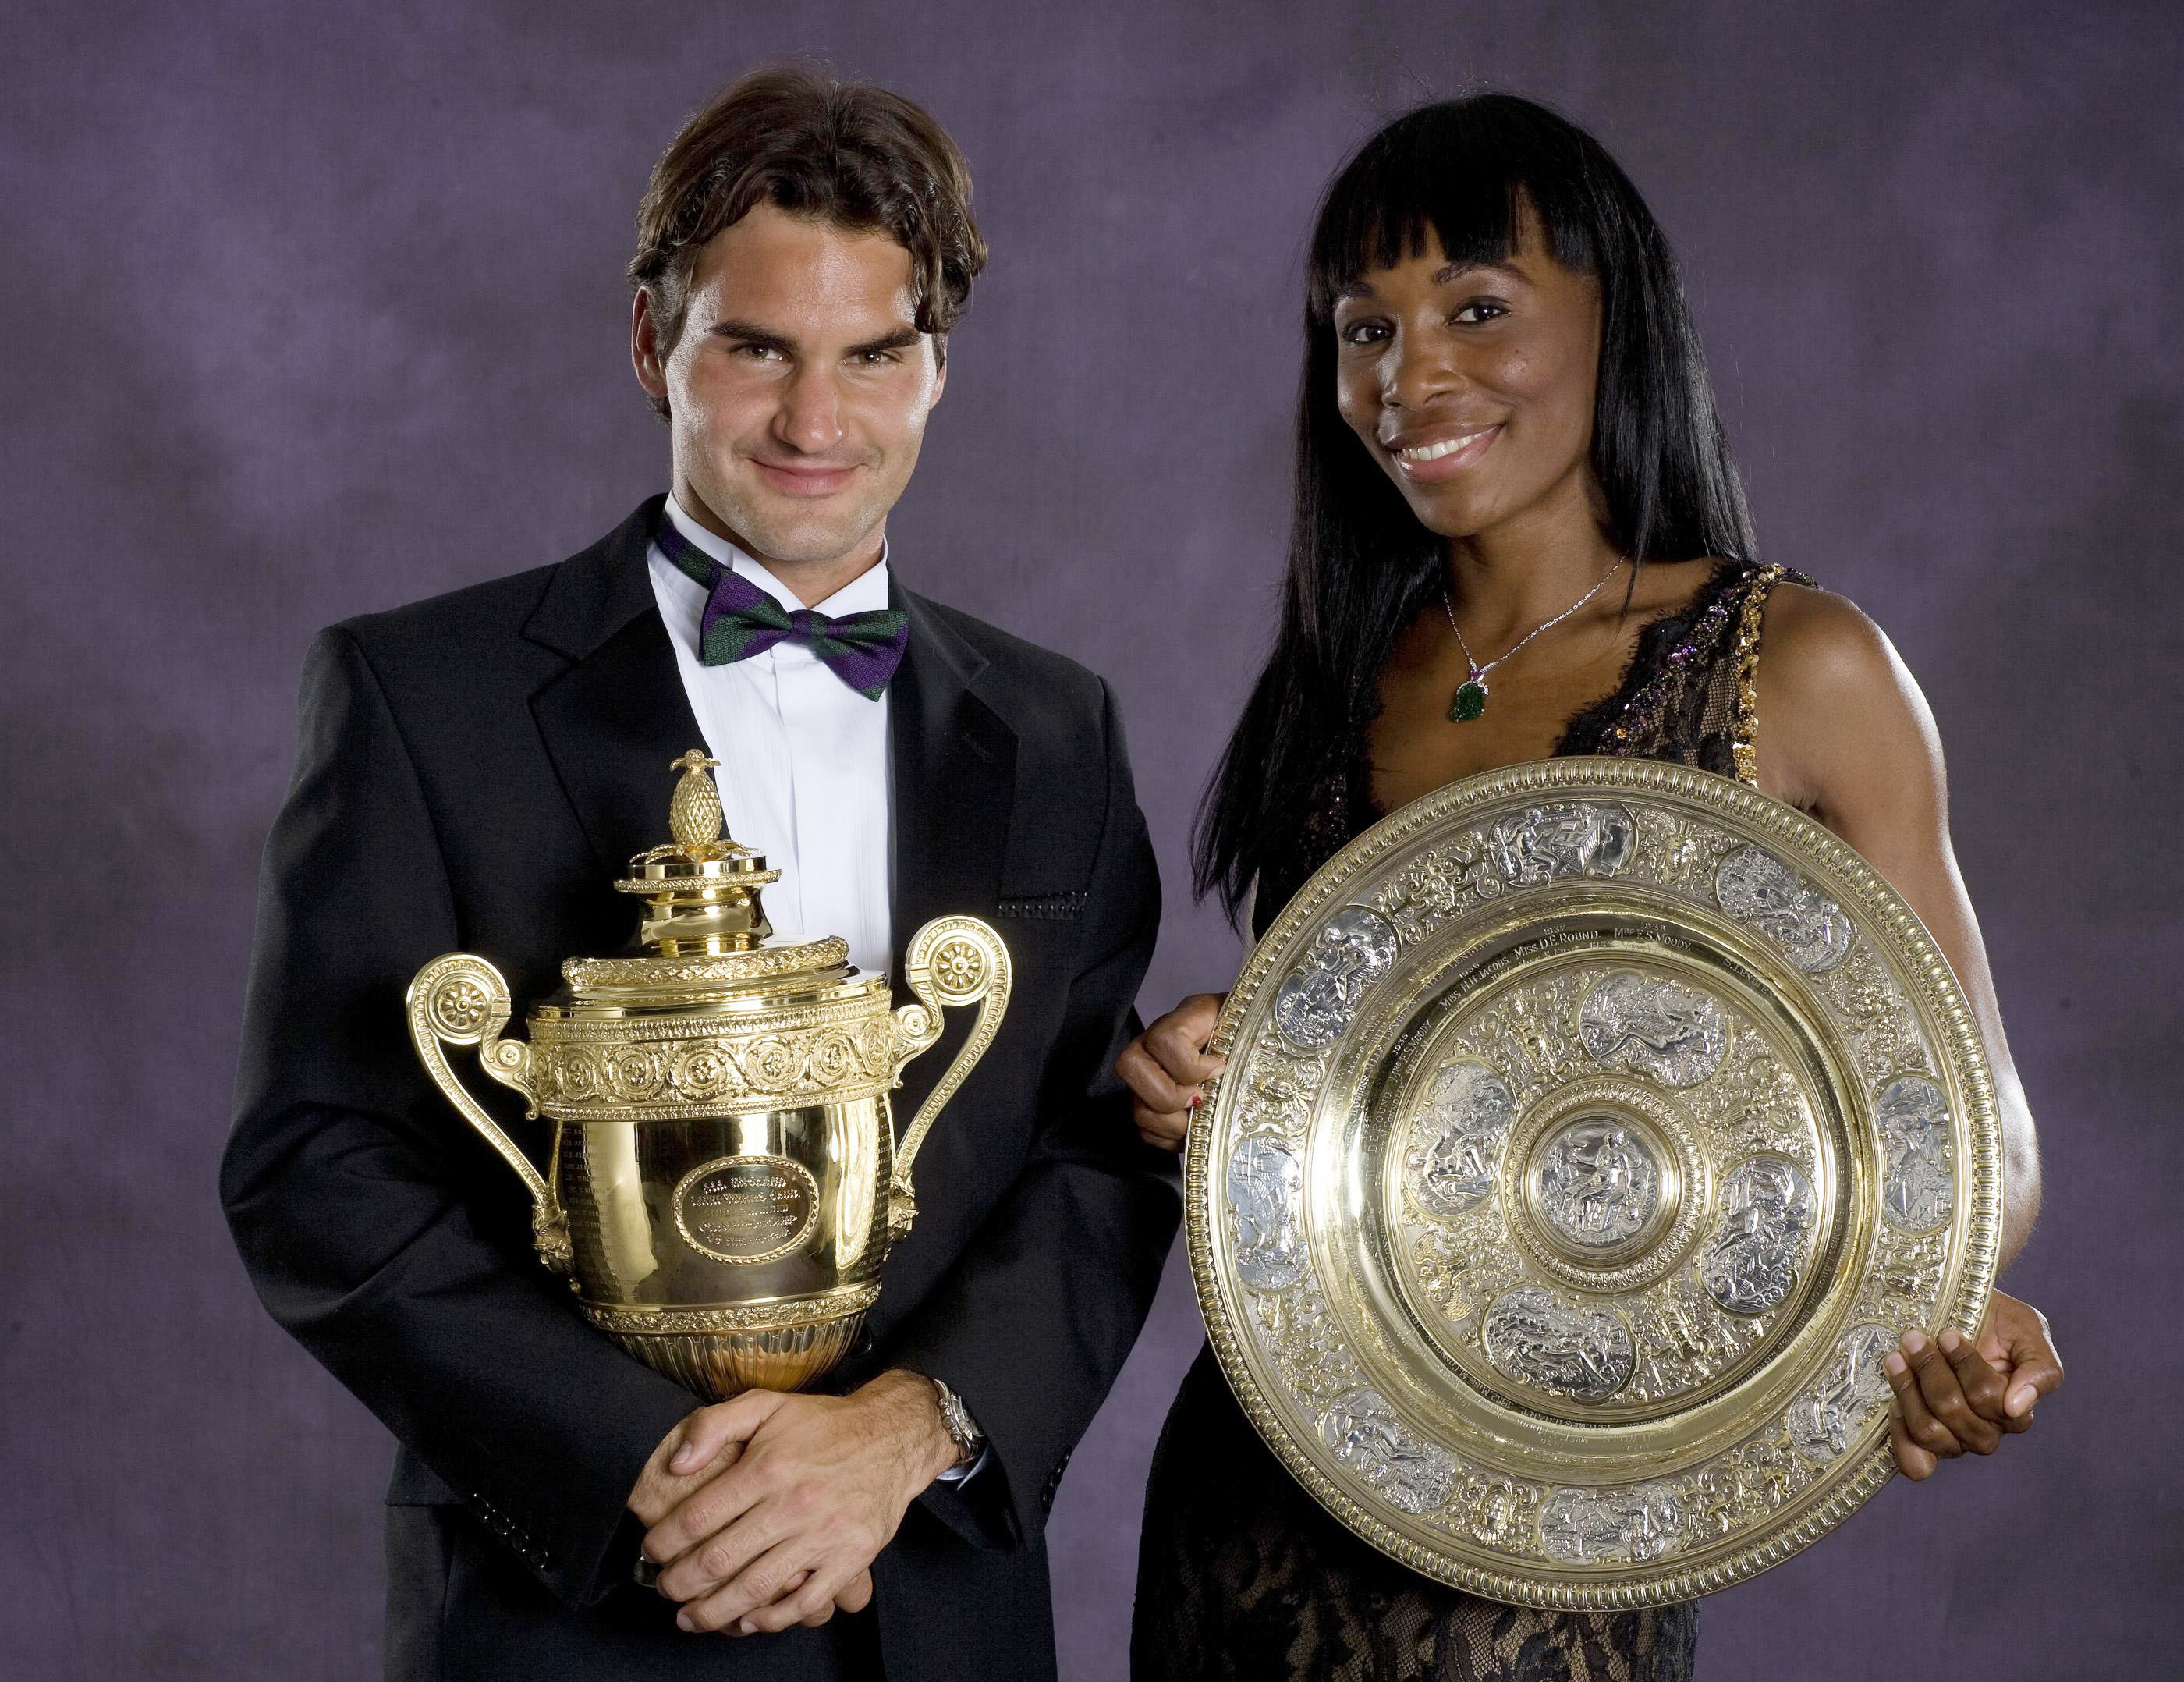 Women's singles champion Venus Williams and men's singles Champion Roger Federer pose with their Wimbledon championship trophies at the Champions' Dinner in London on July 8, 2007.(AP Photo/Bob Martin, AELTC pool)